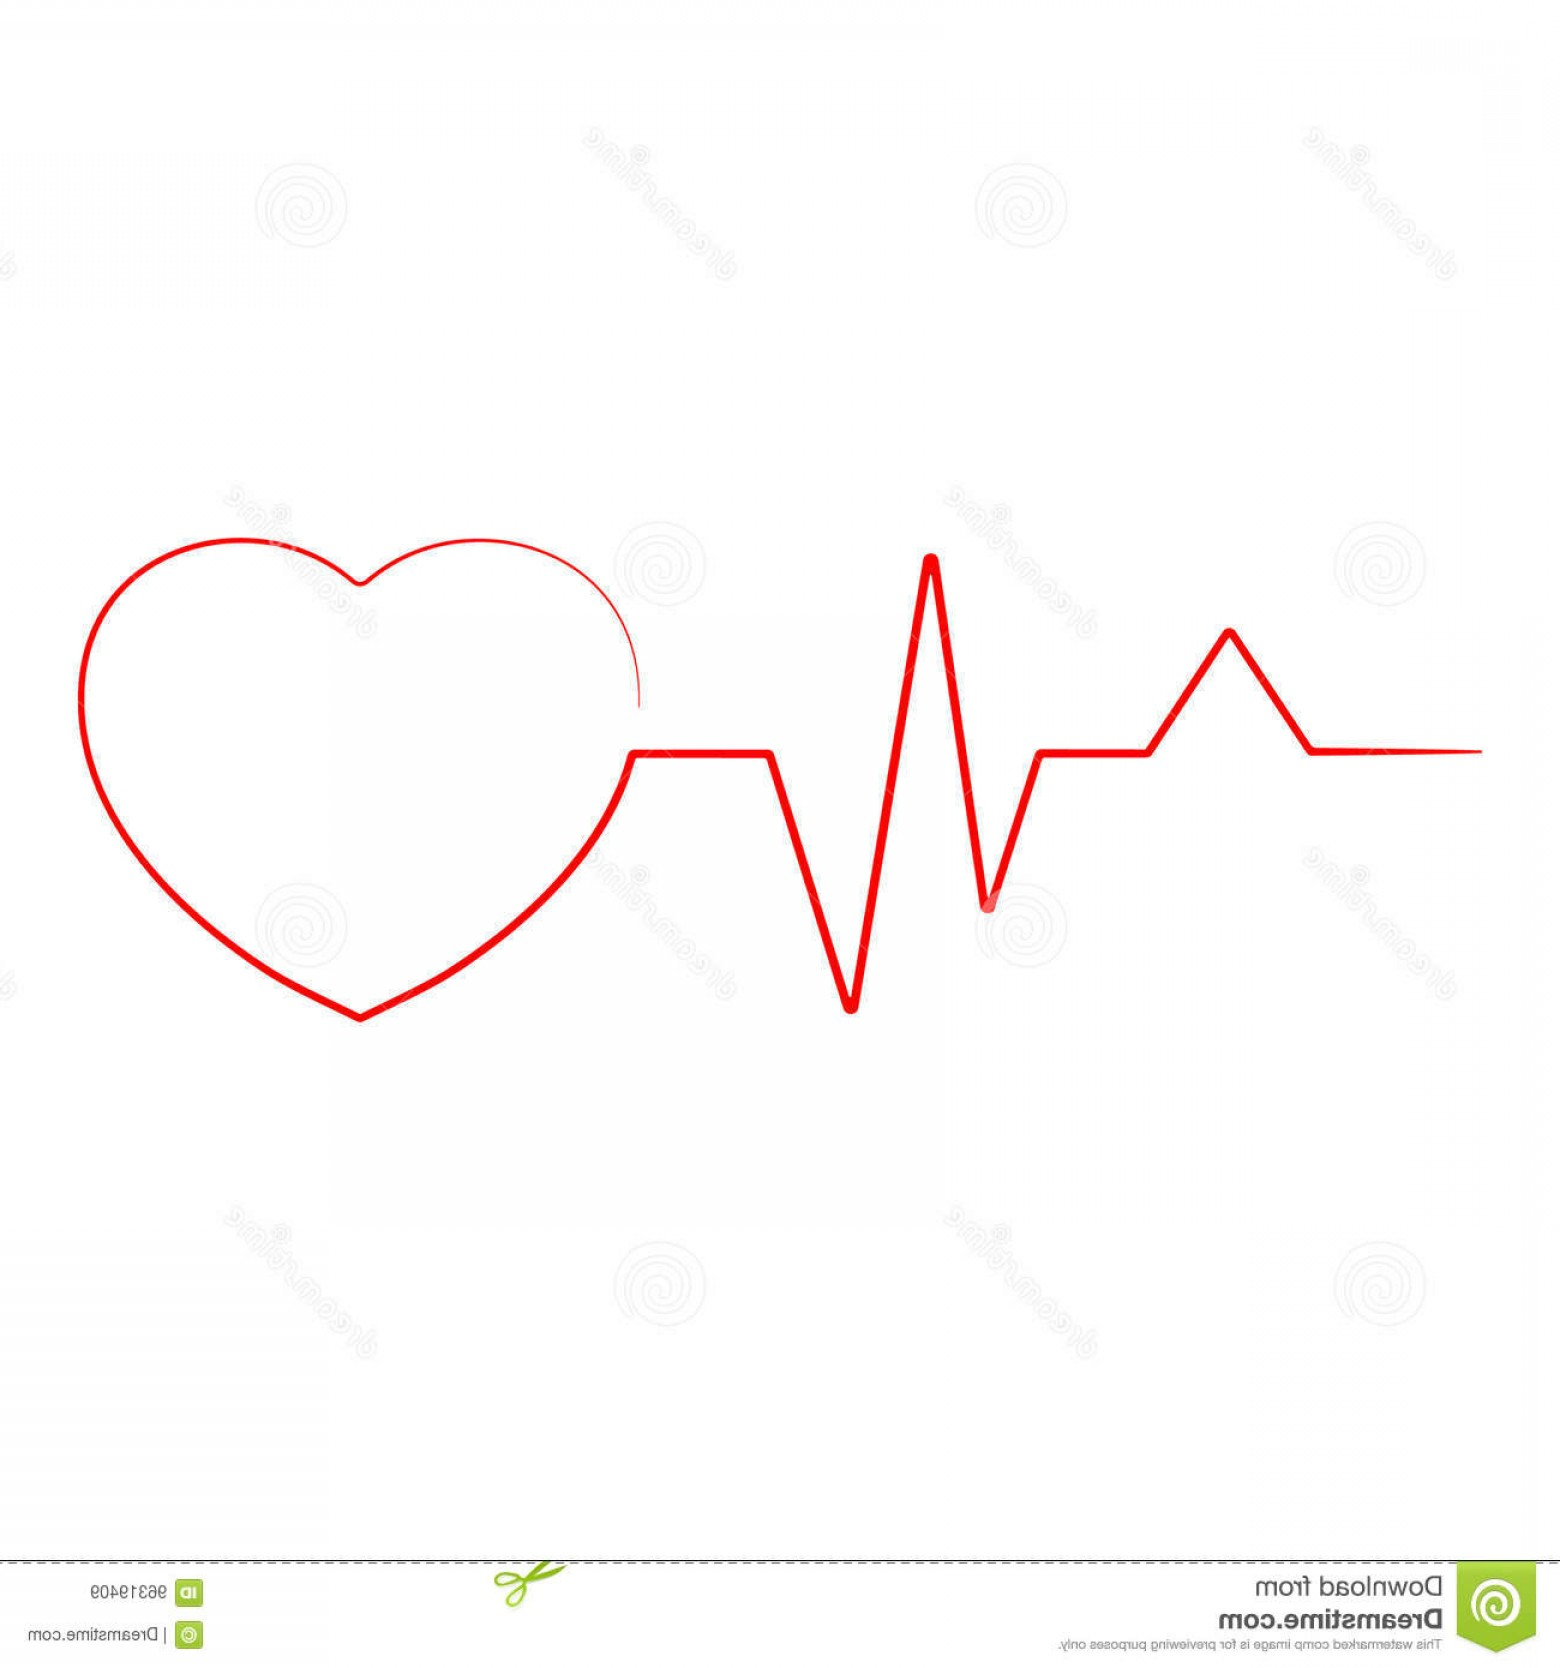 Heart With EKG Line Vector: Stock Illustration Heartbeat Line Heart Cardio Ekg Isolated Background Realistic Vector Illustration Healthcare Image